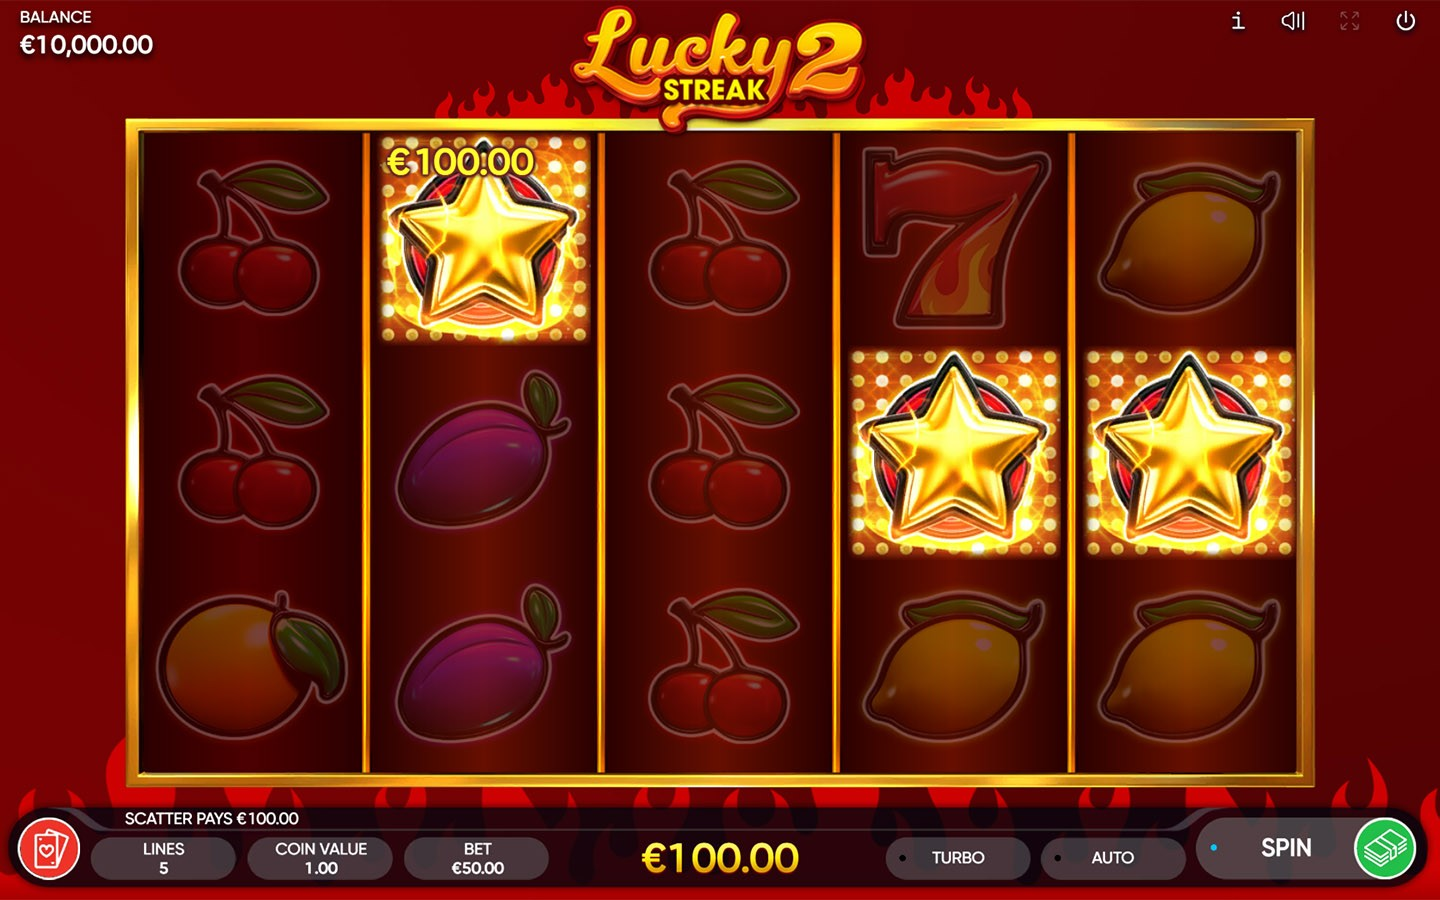 PREMIUM FRUIT SLOTS OF 2020 | Enjoy Lucky Streak 2 slot